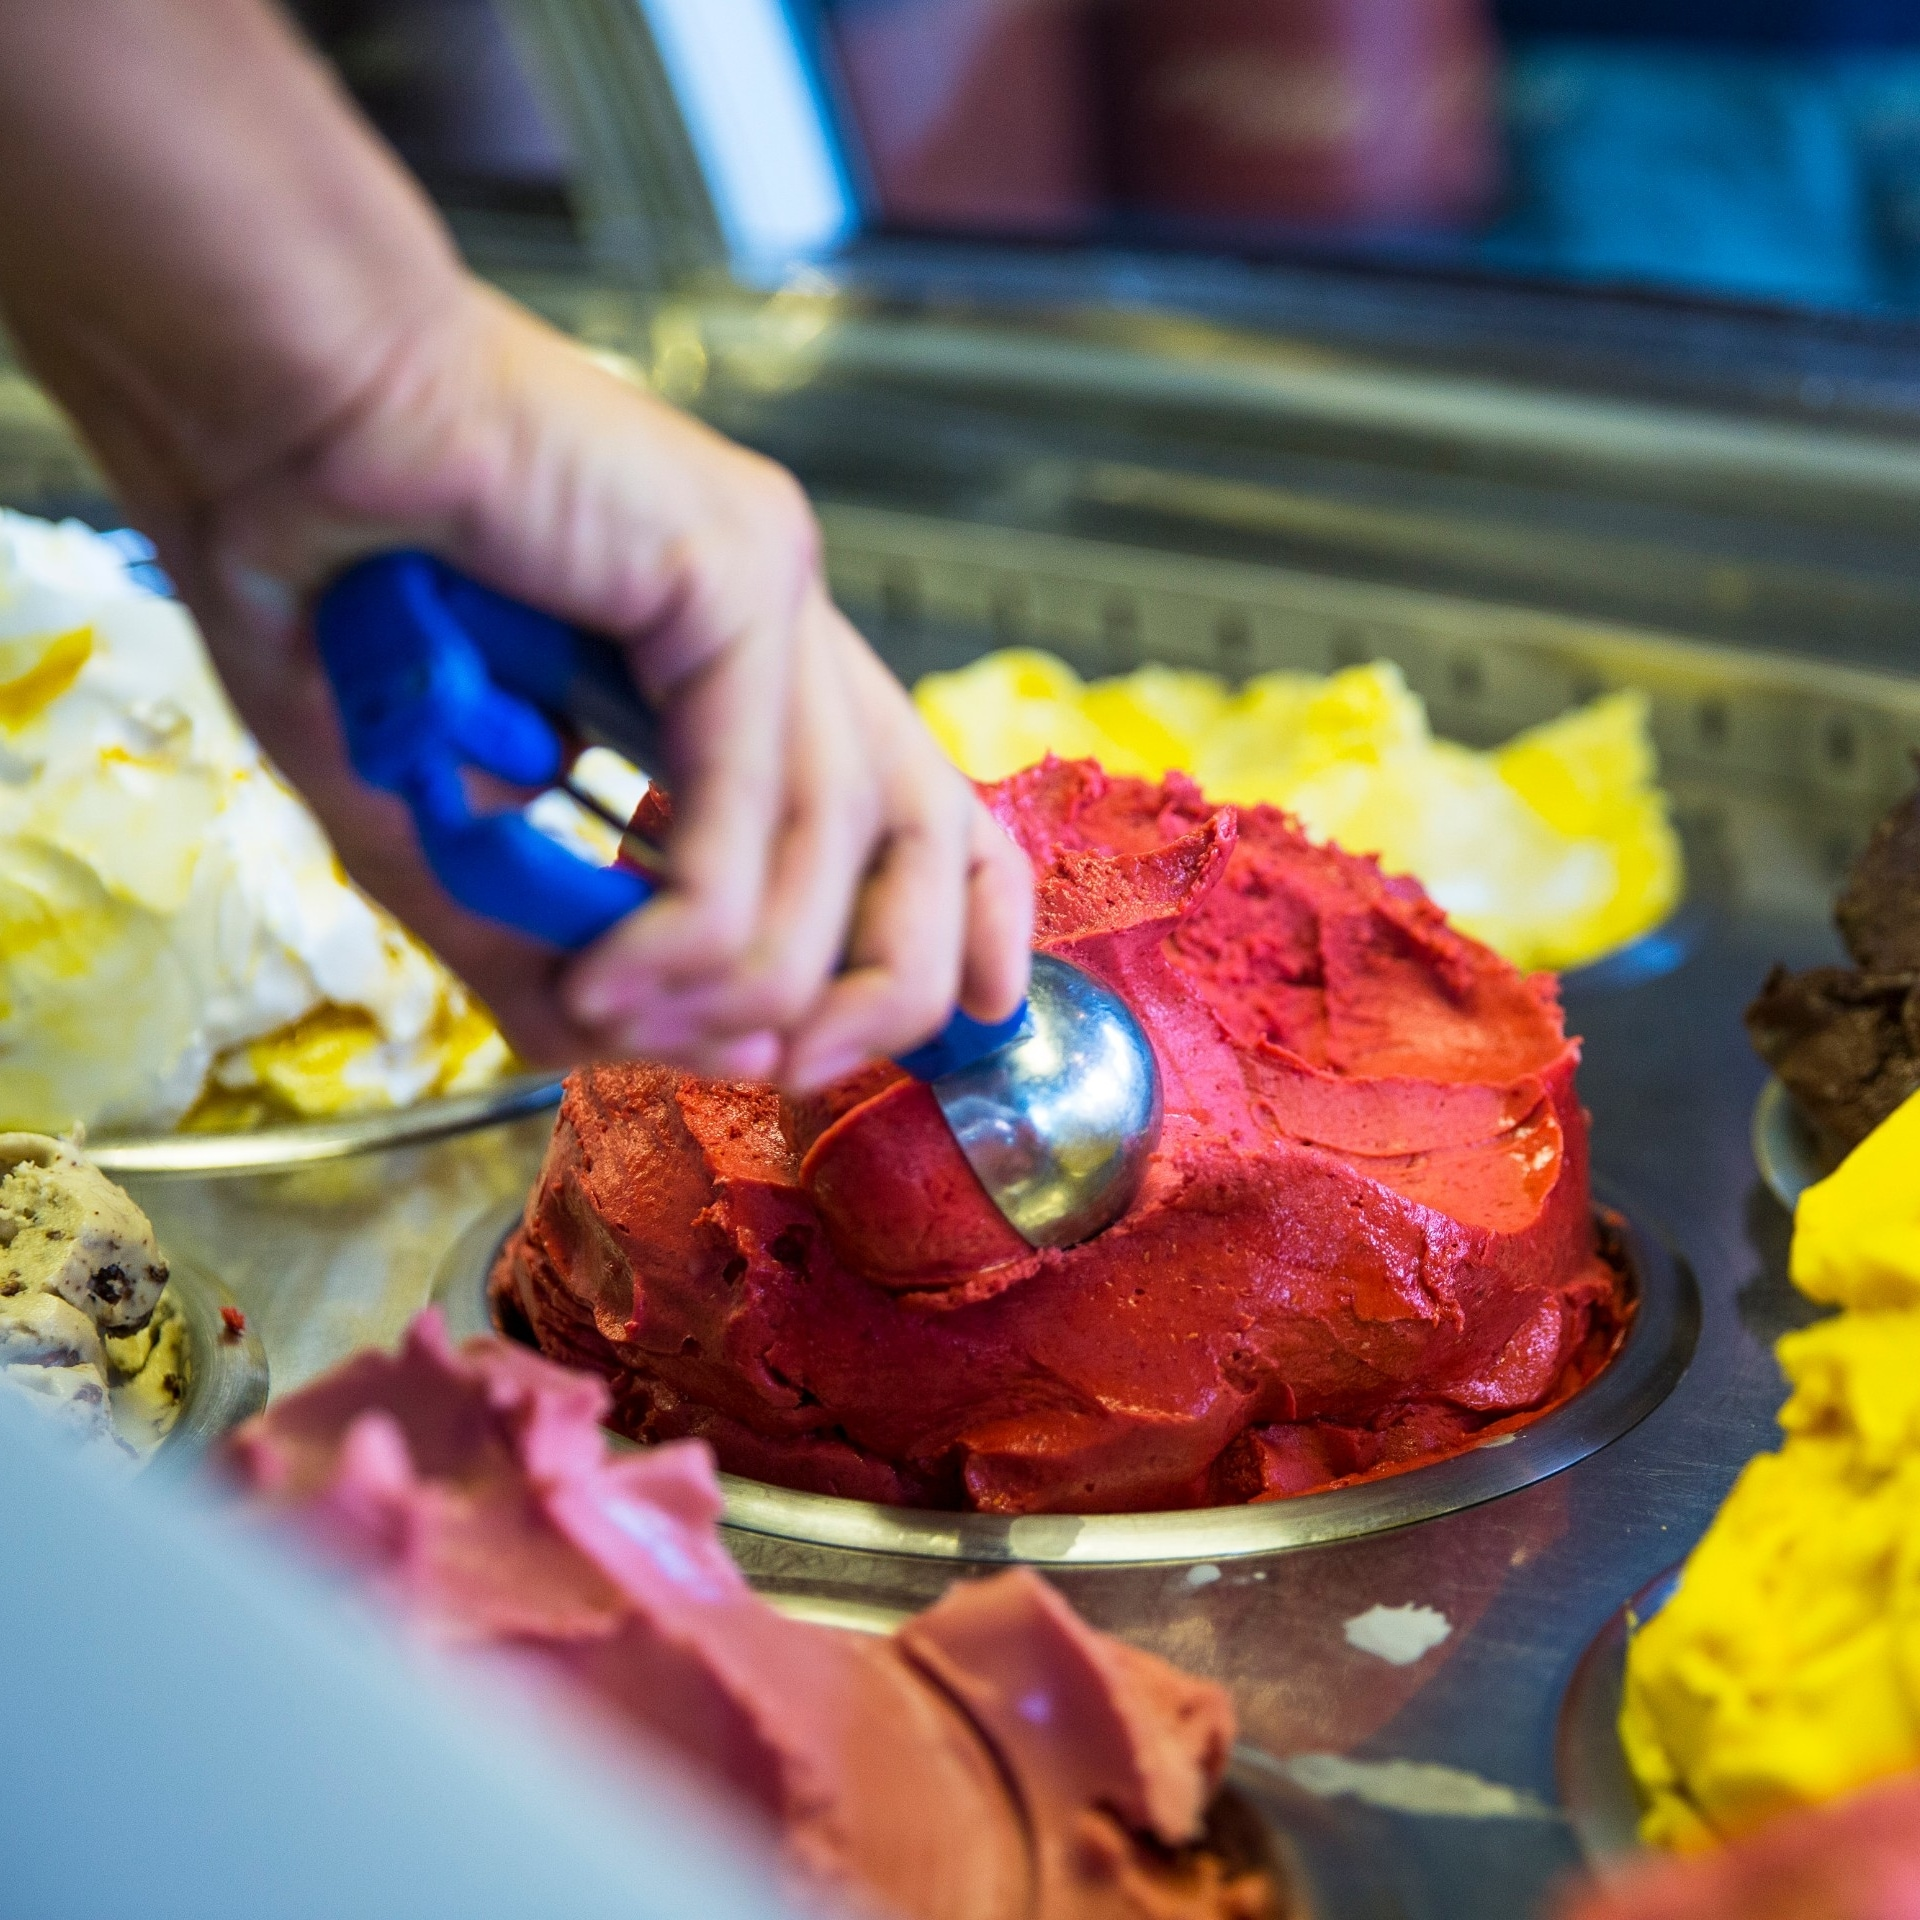 Hand scoops ice cream at Gelato Messina store © Josie Withers/Visit Victoria